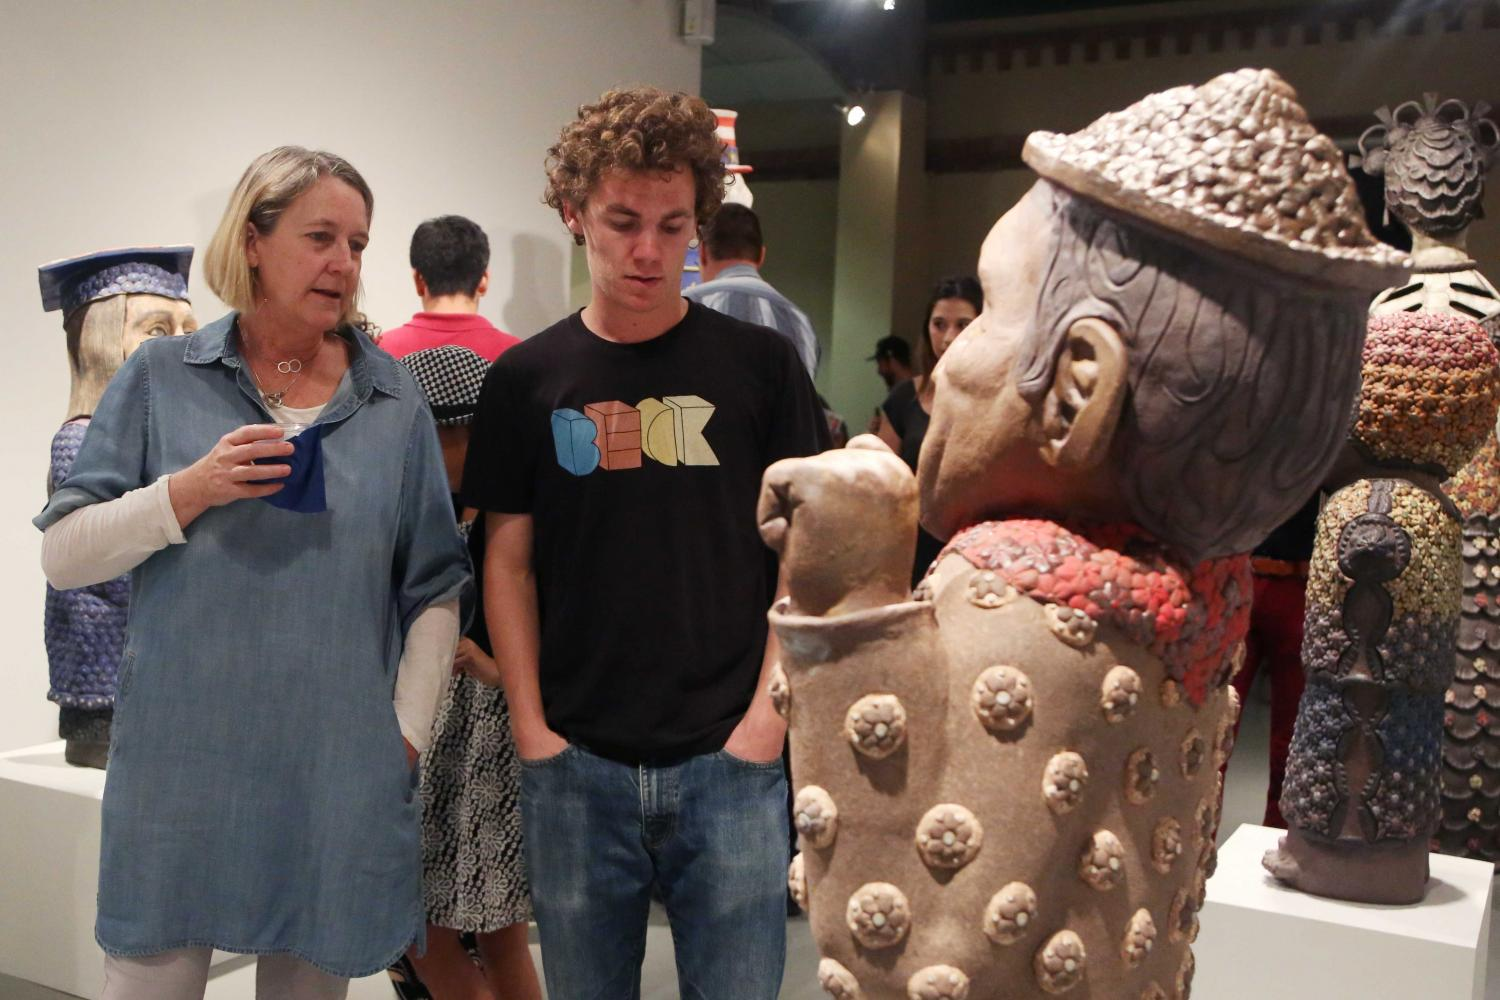 Drawing+lecturer+Alexandra+McGovern+observes+one+of+Rodriguez%27s+ceramic+works.